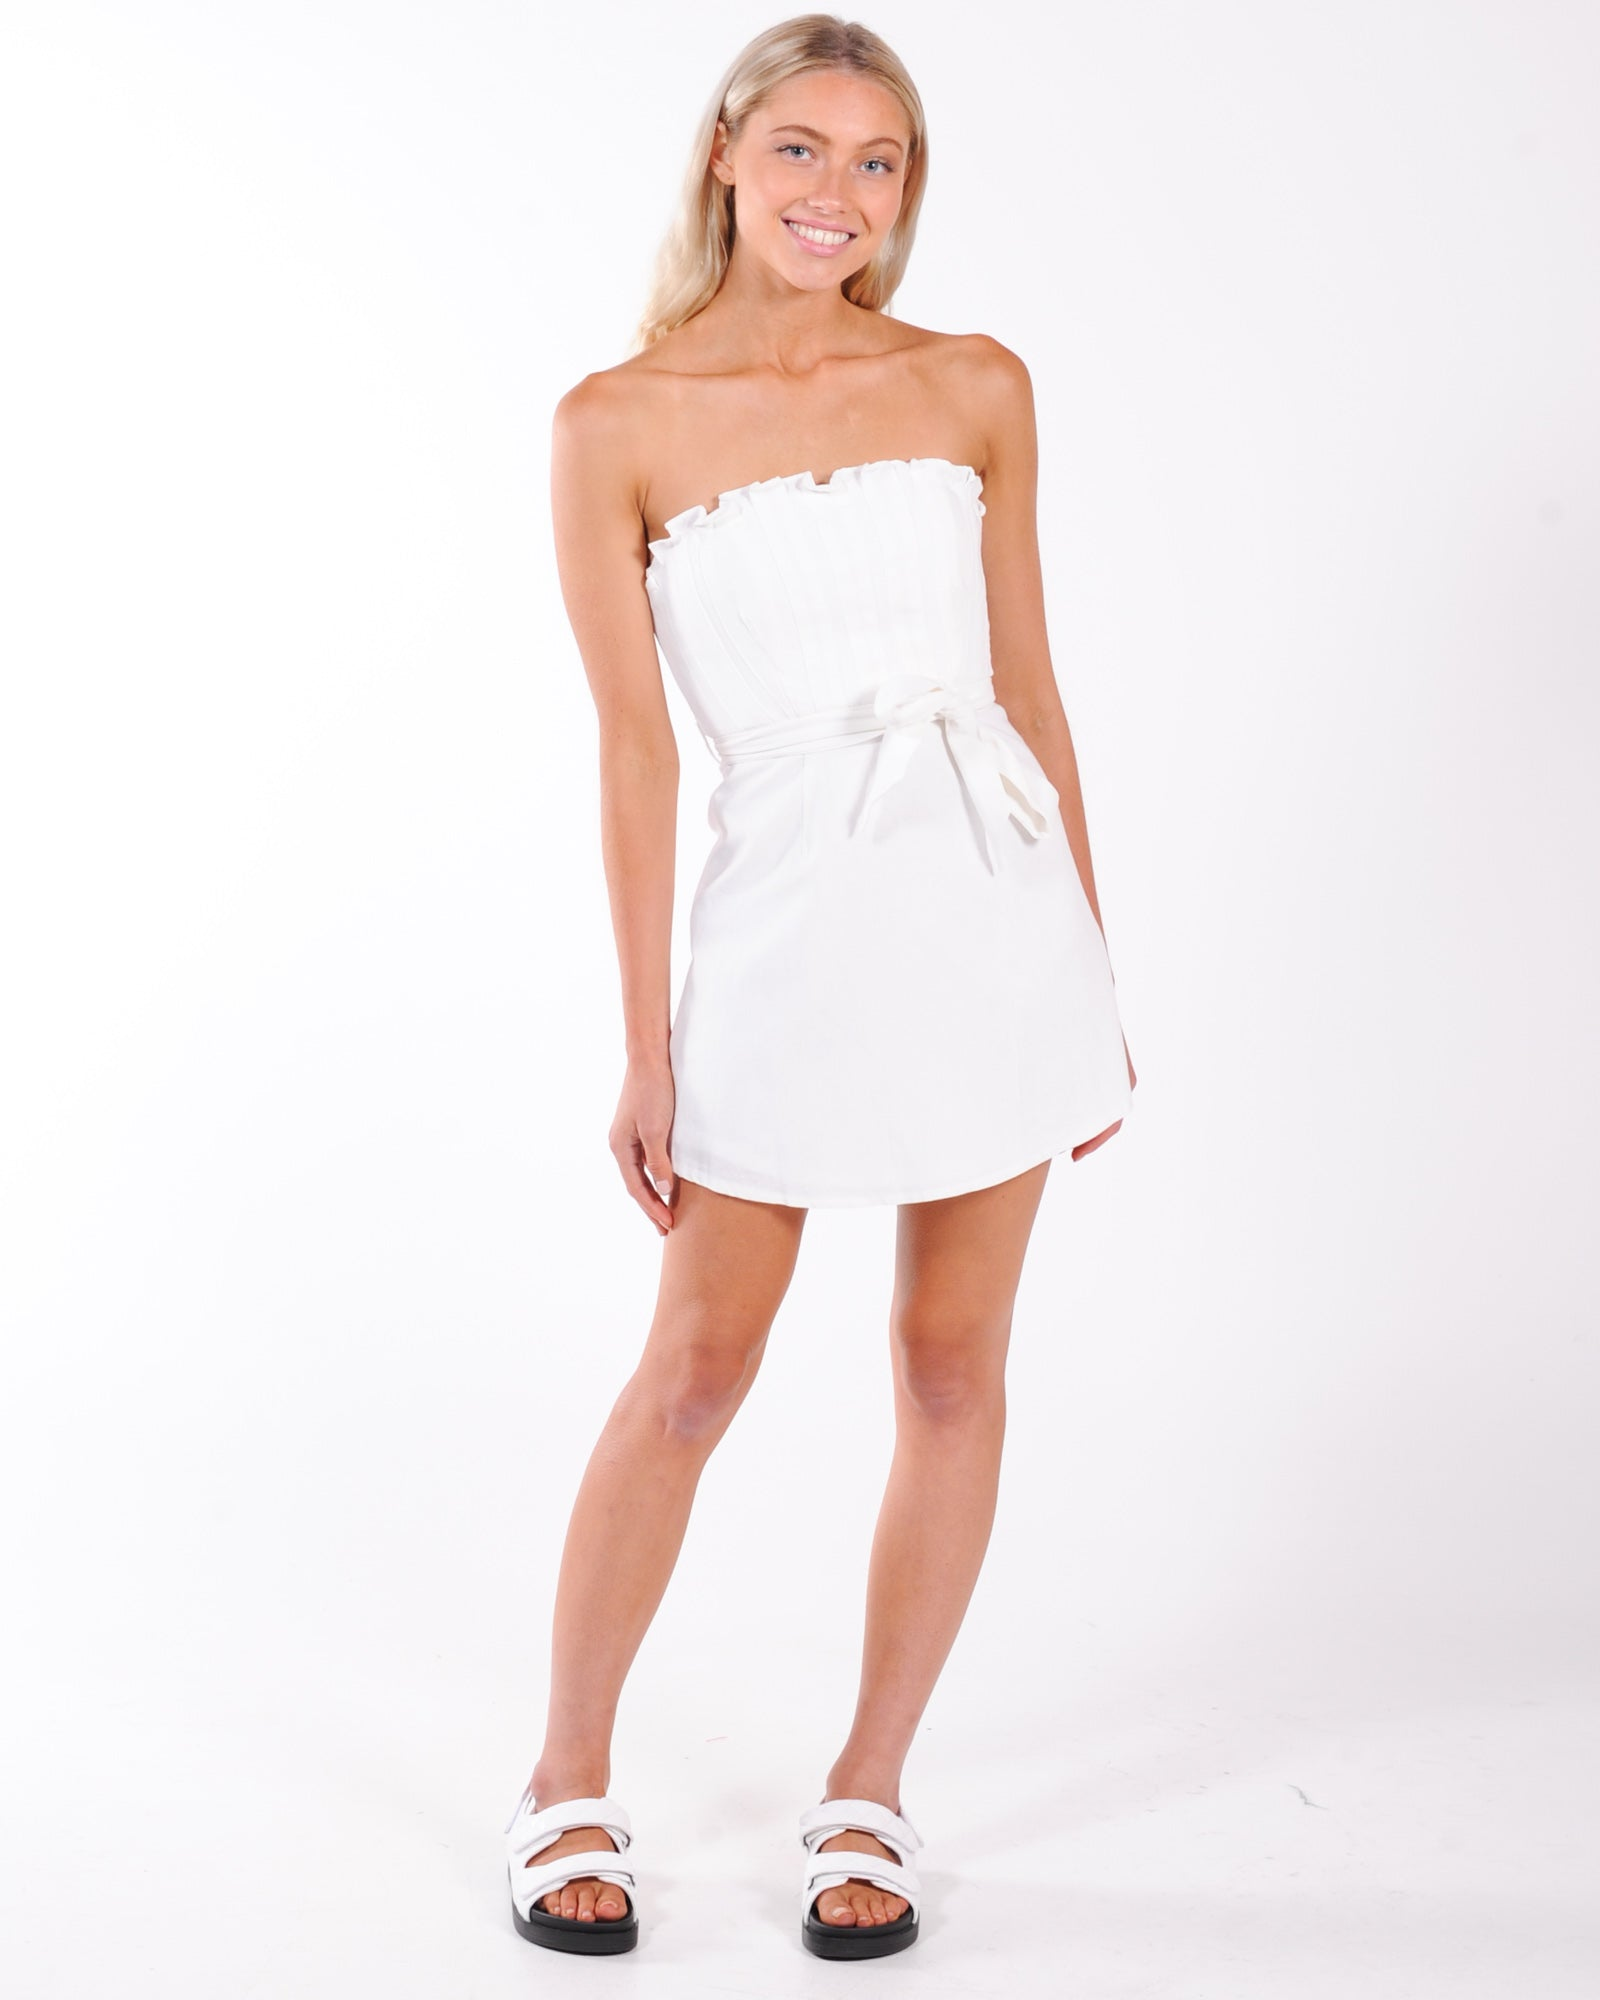 Celebrity Mini Dress - White